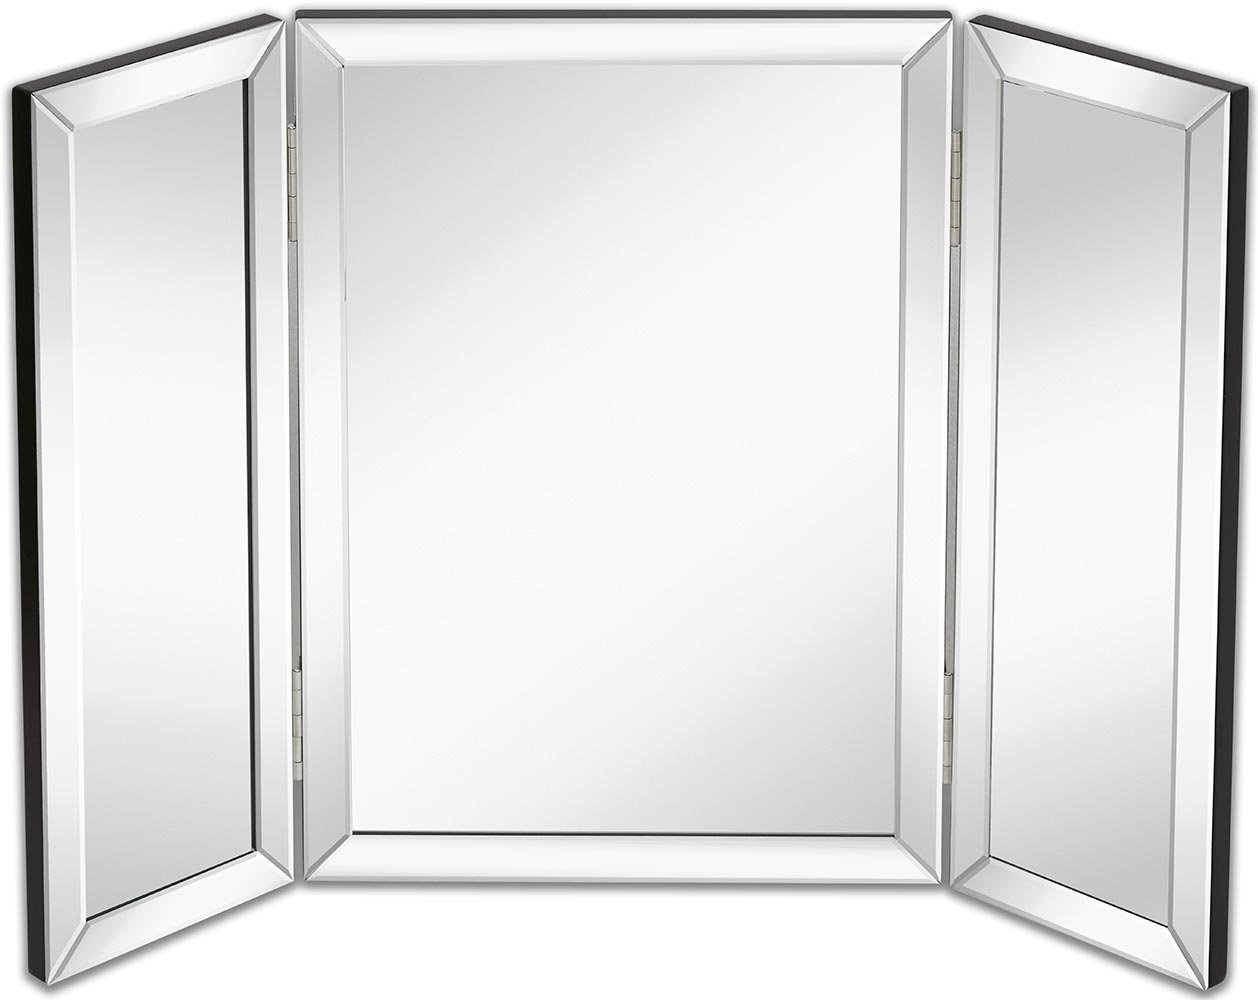 Hamilton Hills Trifold Vanity Mirror | Solid Hinged Sided Tri-fold Beveled Mirrored Edges | 3 Way Hangable on Wall or Tabletop Cosmetic & Makeup Mirror 21'' x 30'' by Hamilton Hills